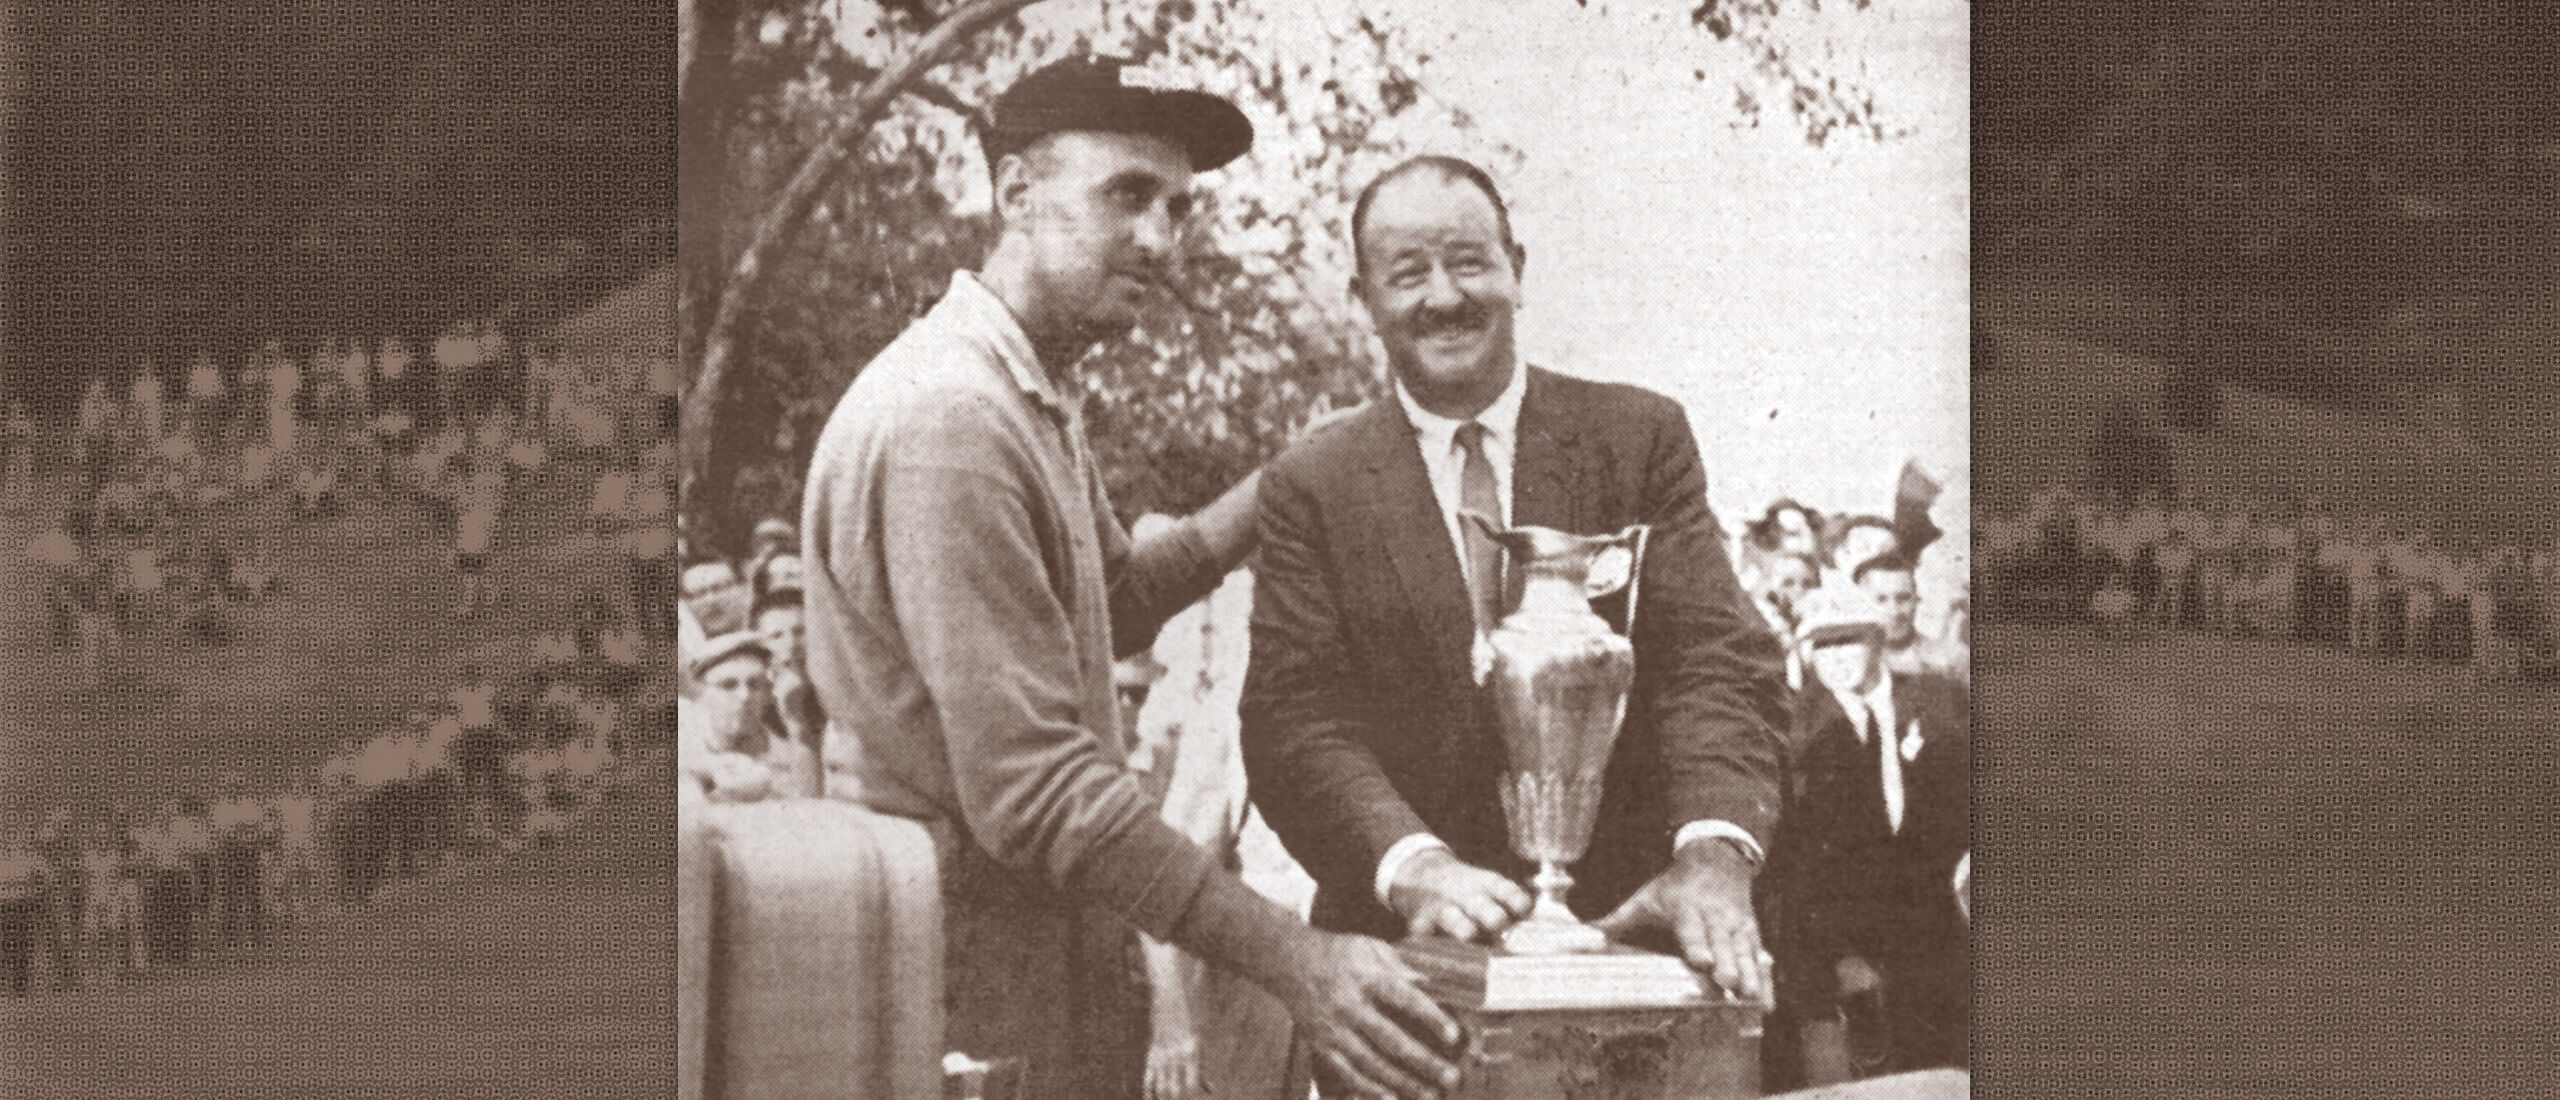 1960 – 51st Canadian Open Champion, Art Wall Jr.